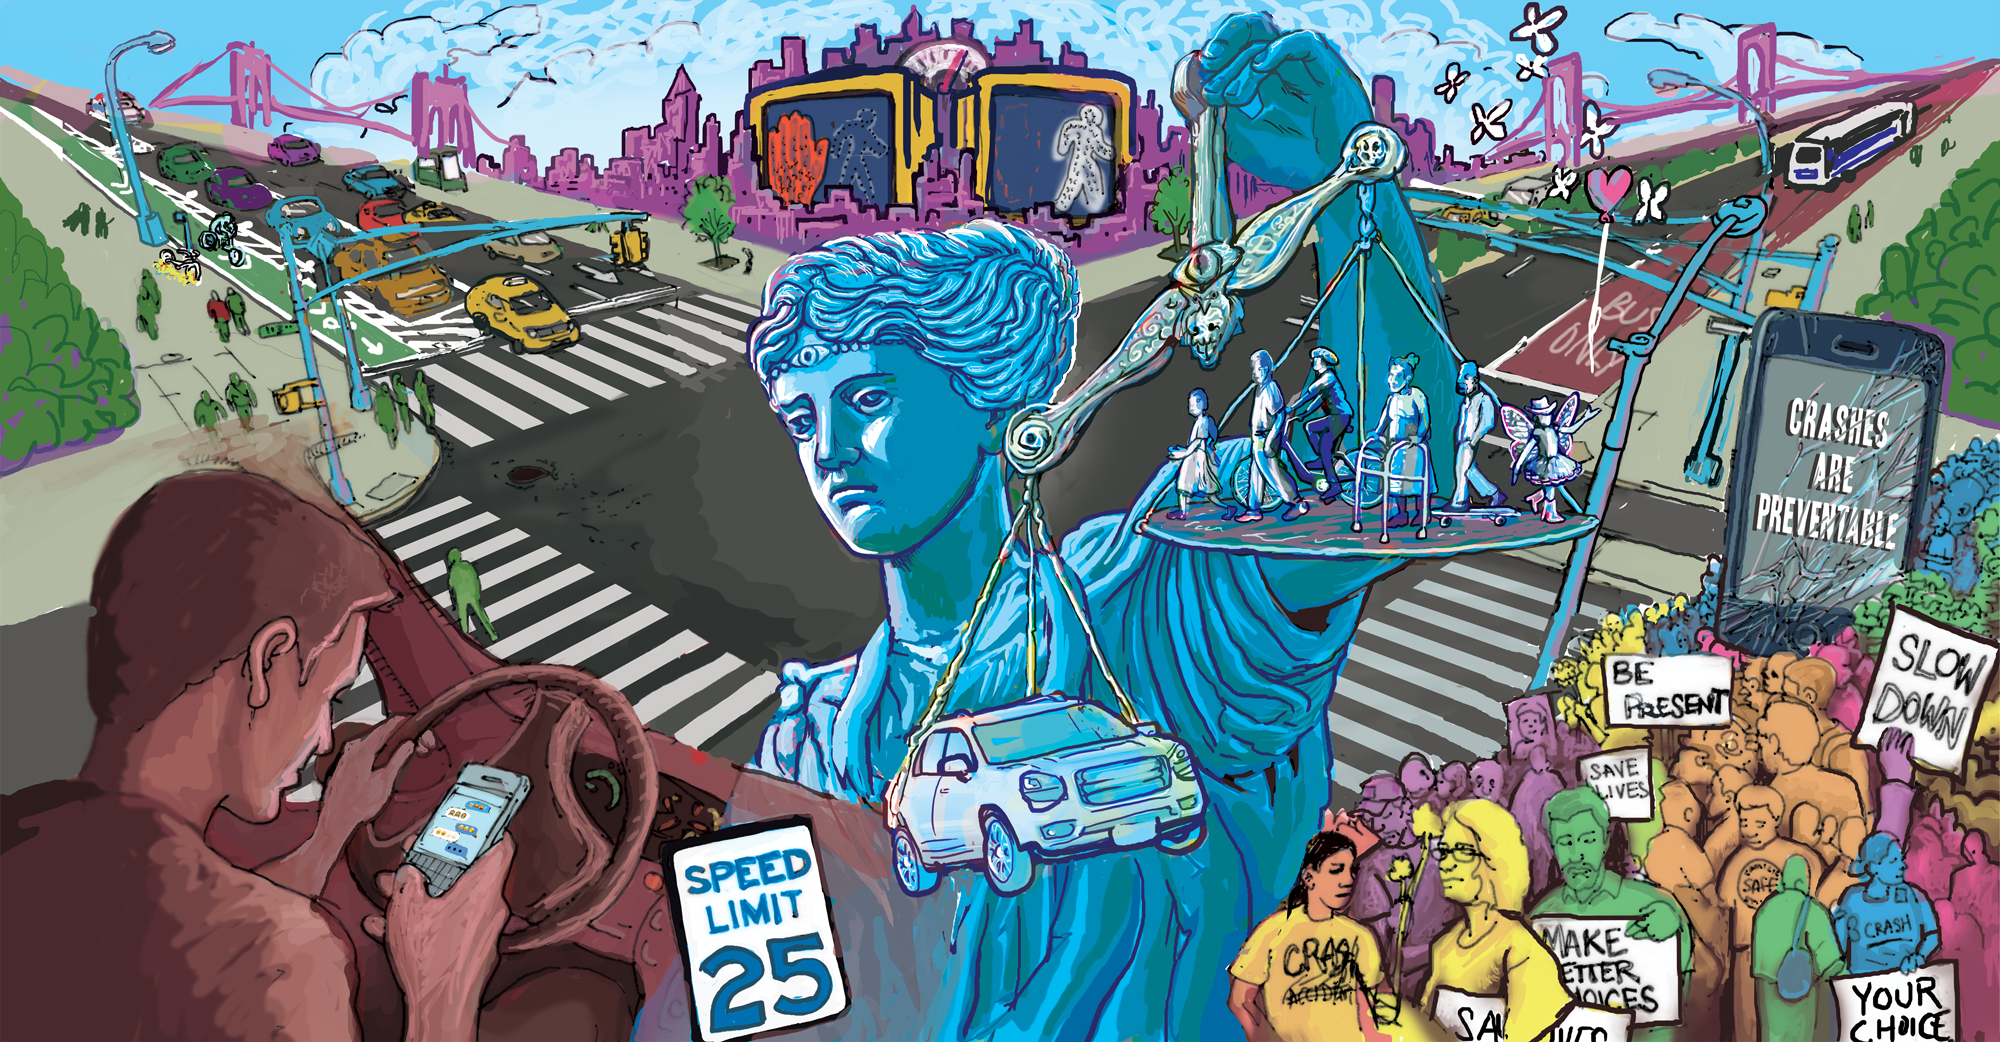 New Mural in Park Slope Puts Traffic Justice Front and Center ...